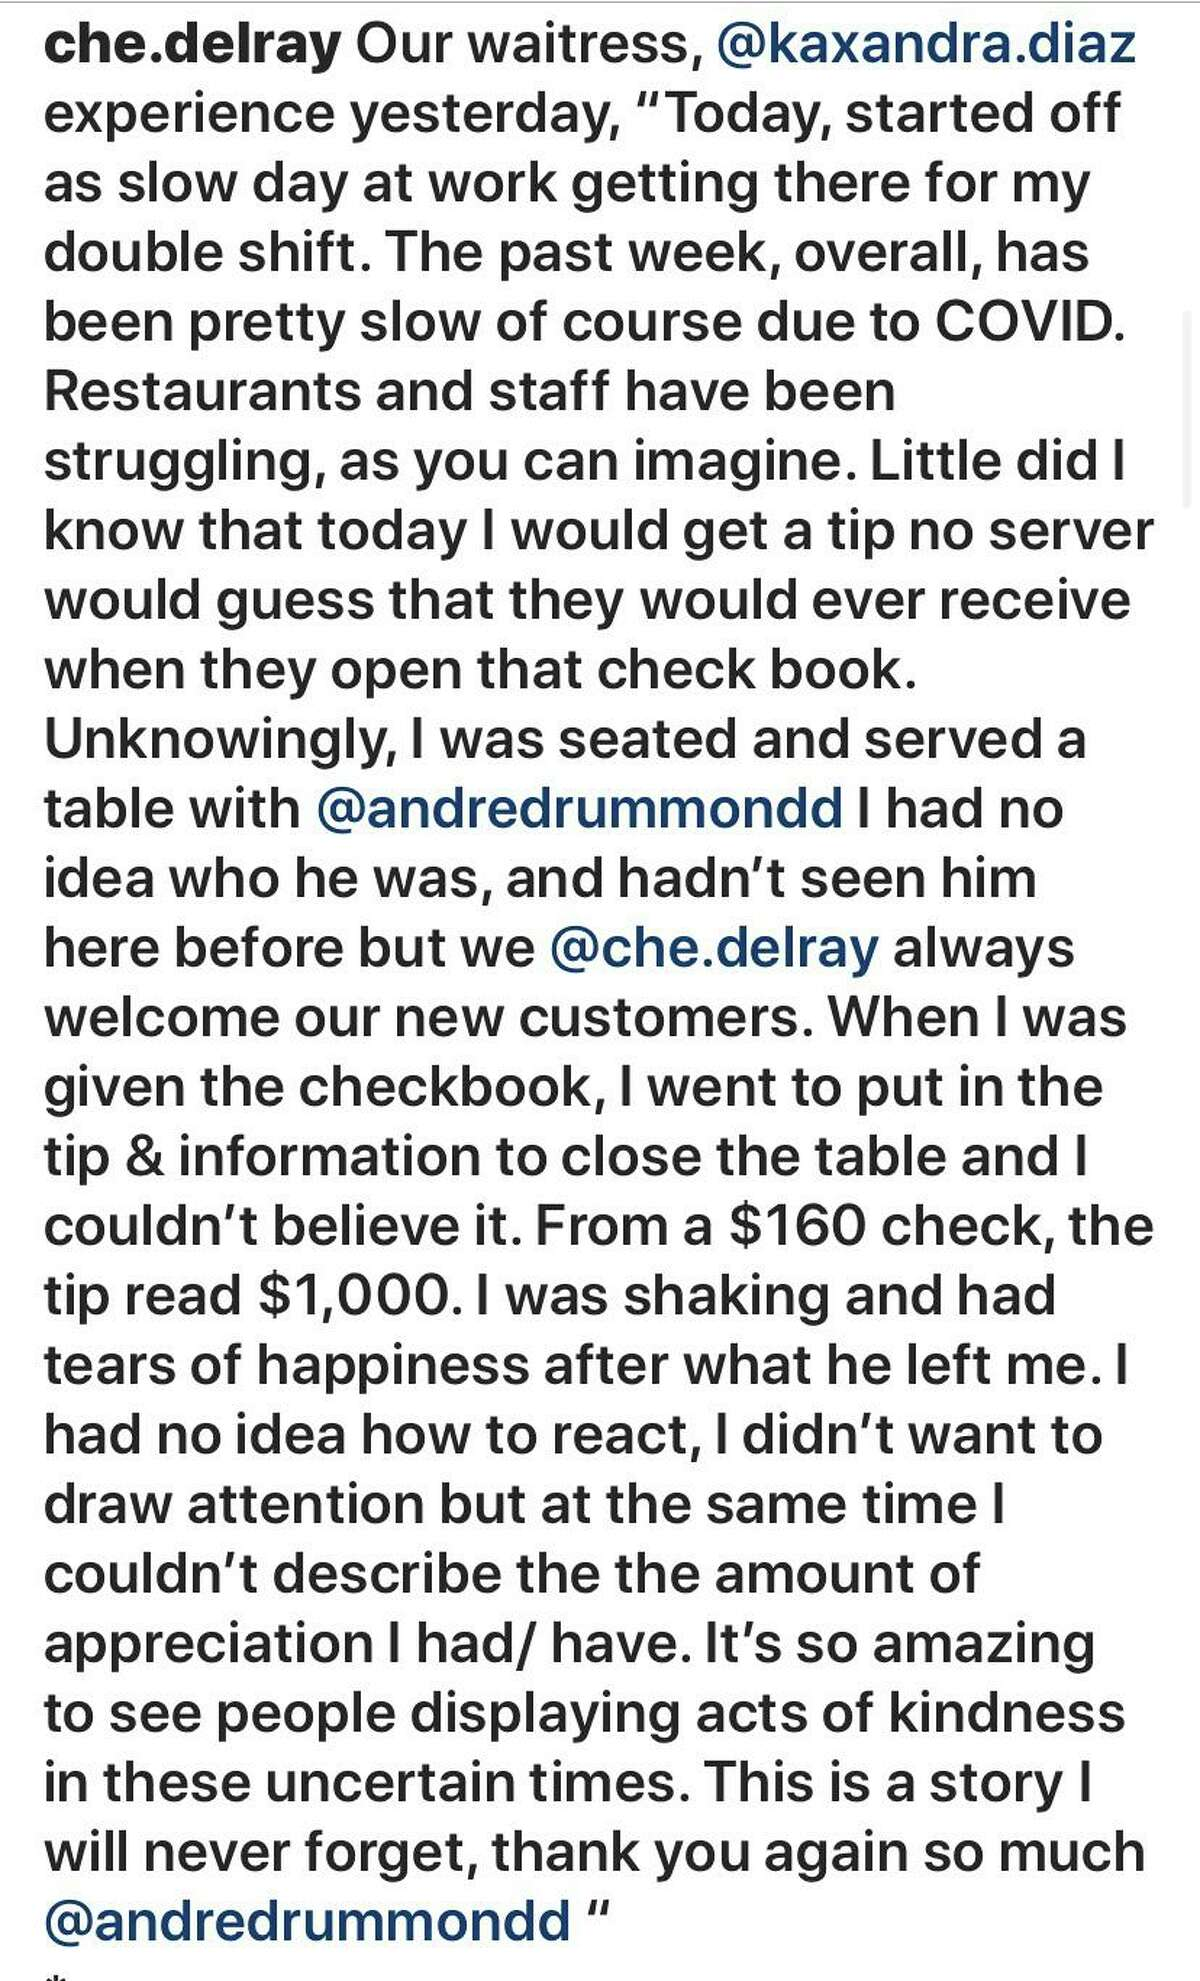 NBA star Andre Drummond left a $1,000 tip at a Florida restaurant.